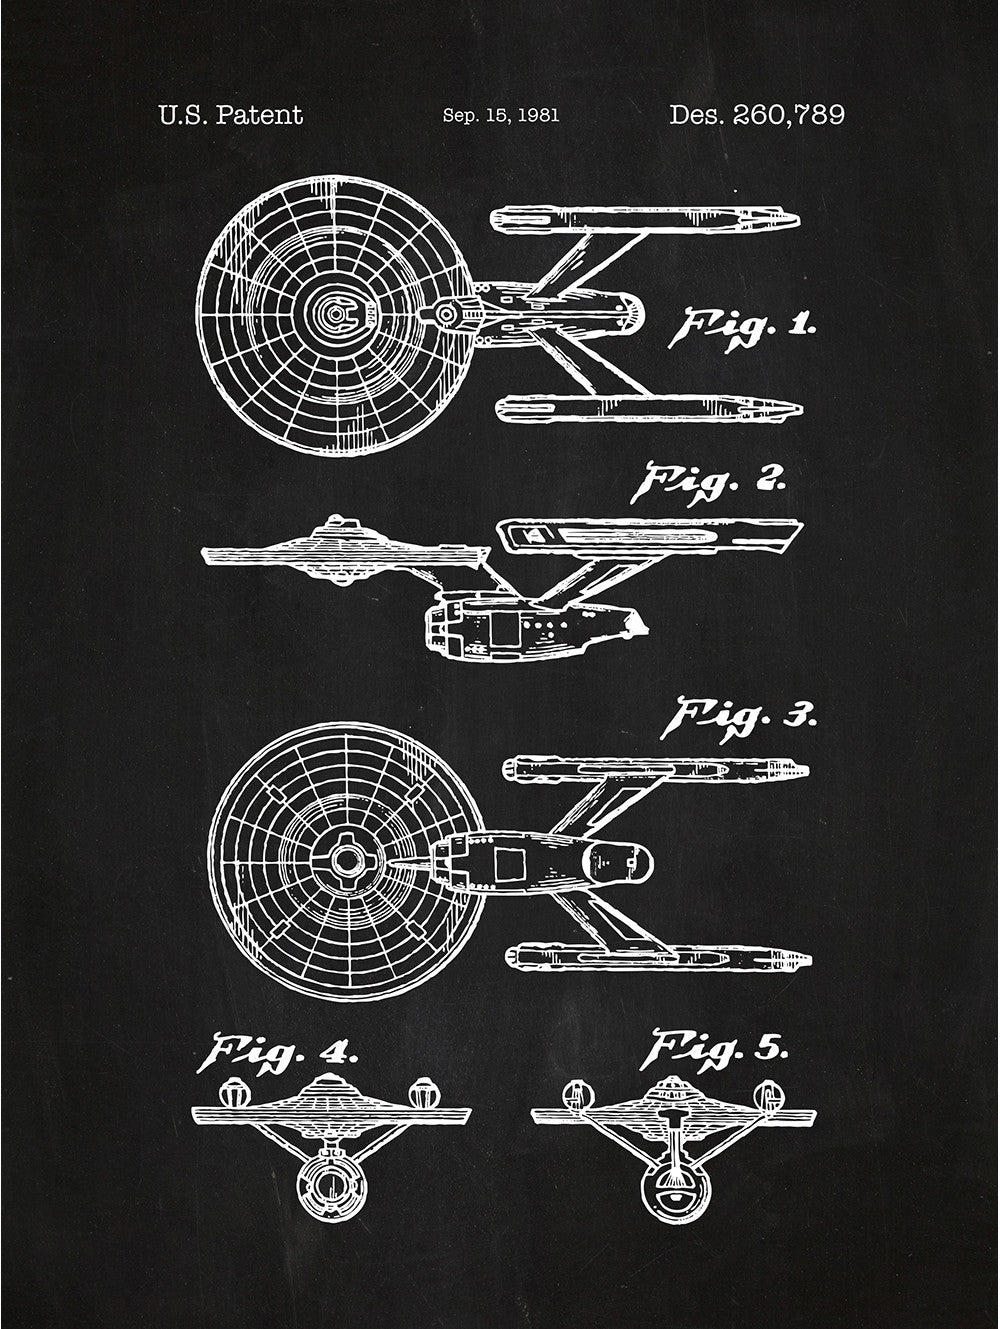 (U4) - Star Trek Enterprise - 1981